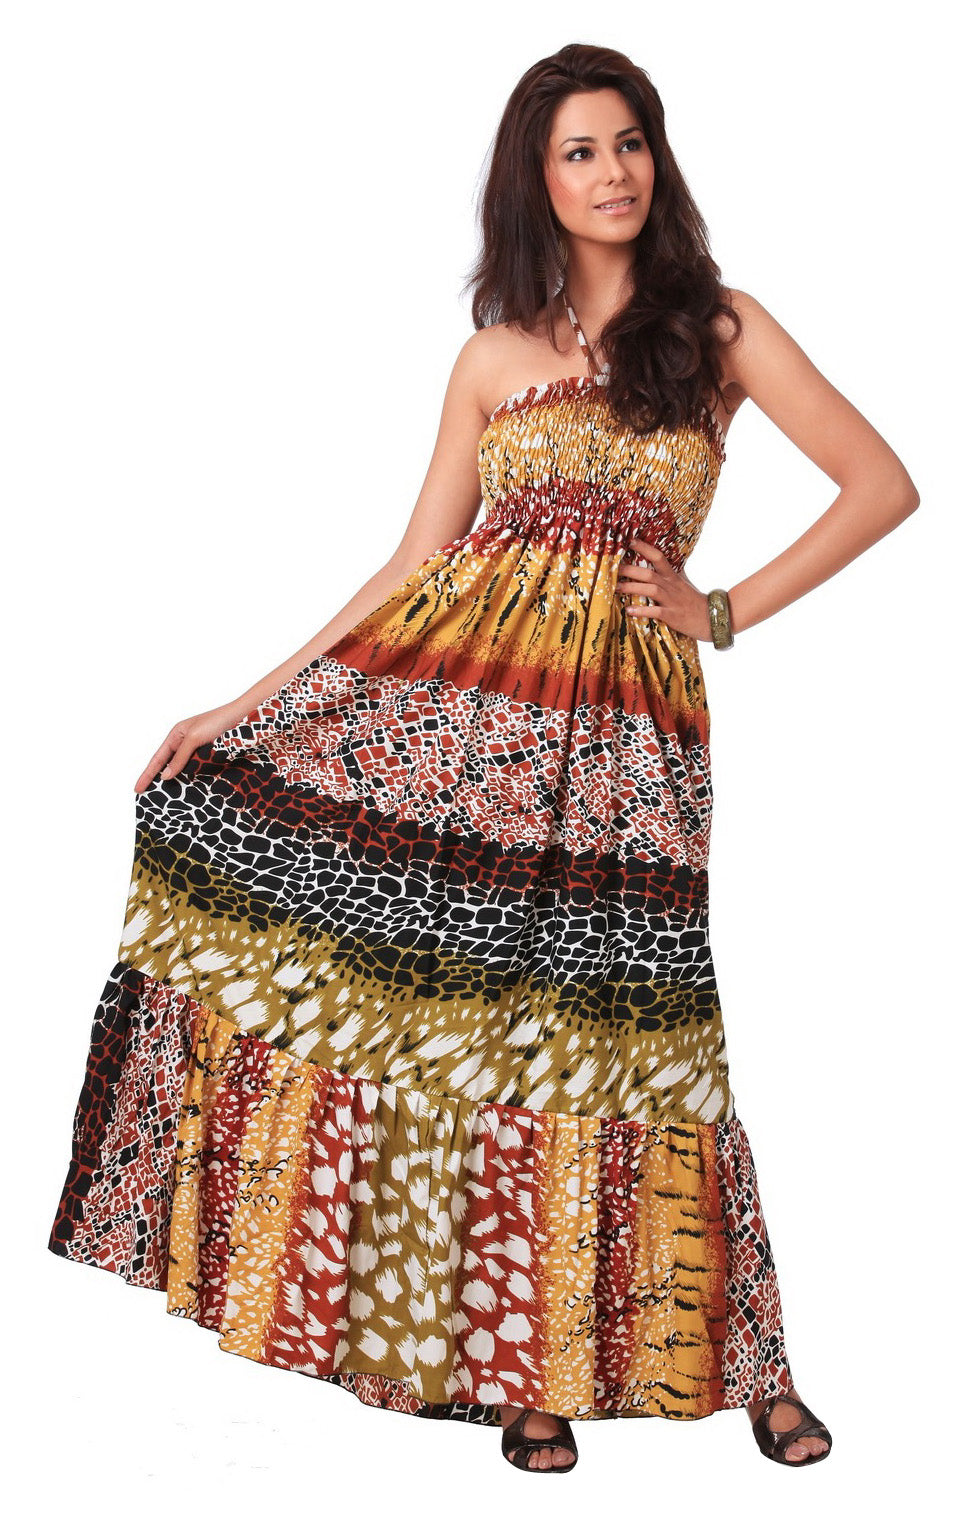 LA LEELA Soft Printed Sundresses Luau Coverup Womens Multi 1588 One Size